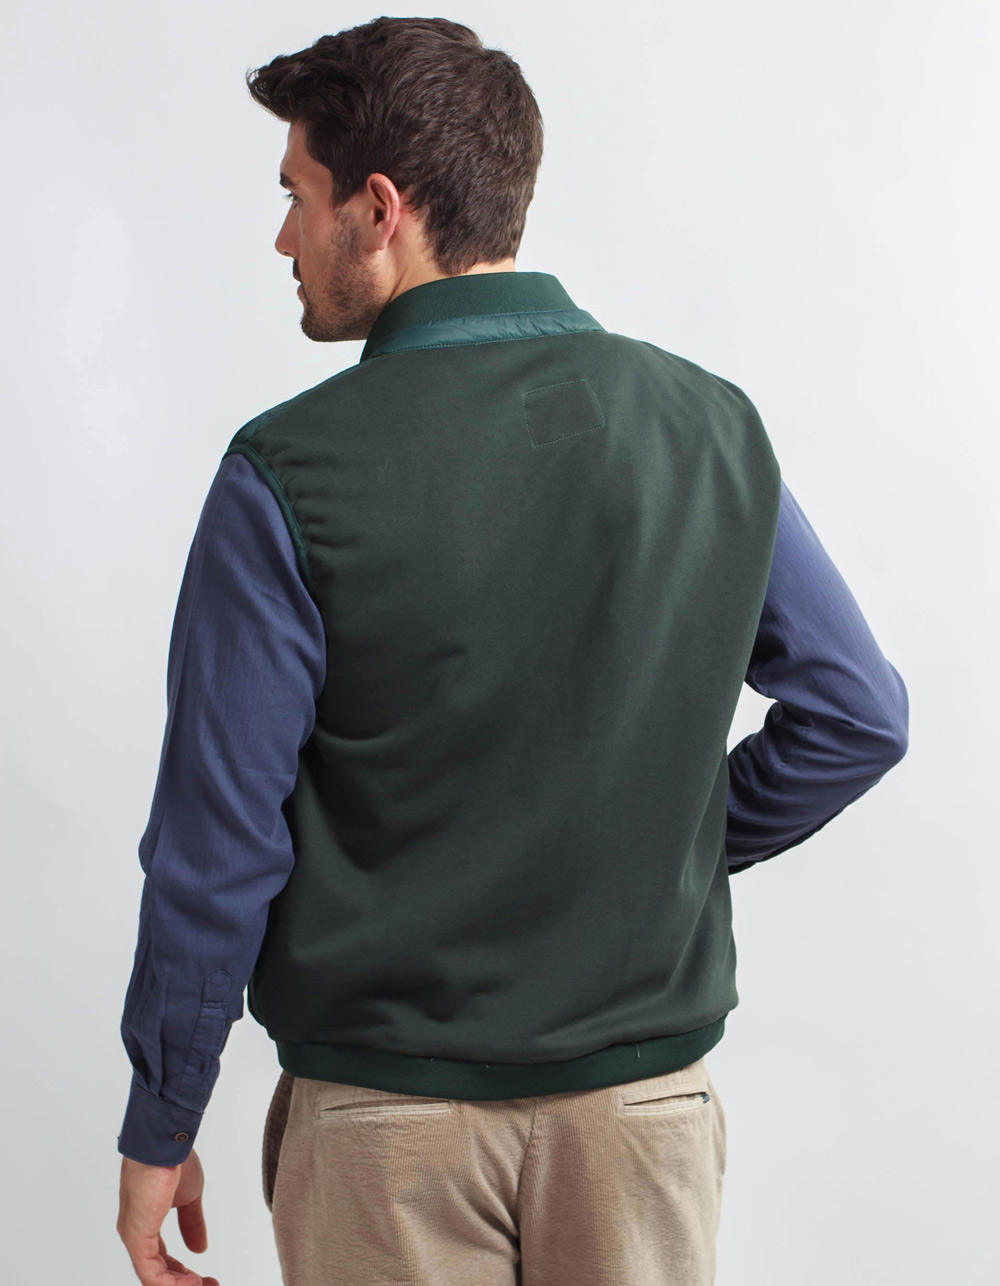 Green vest front part padded back part of point - Backside